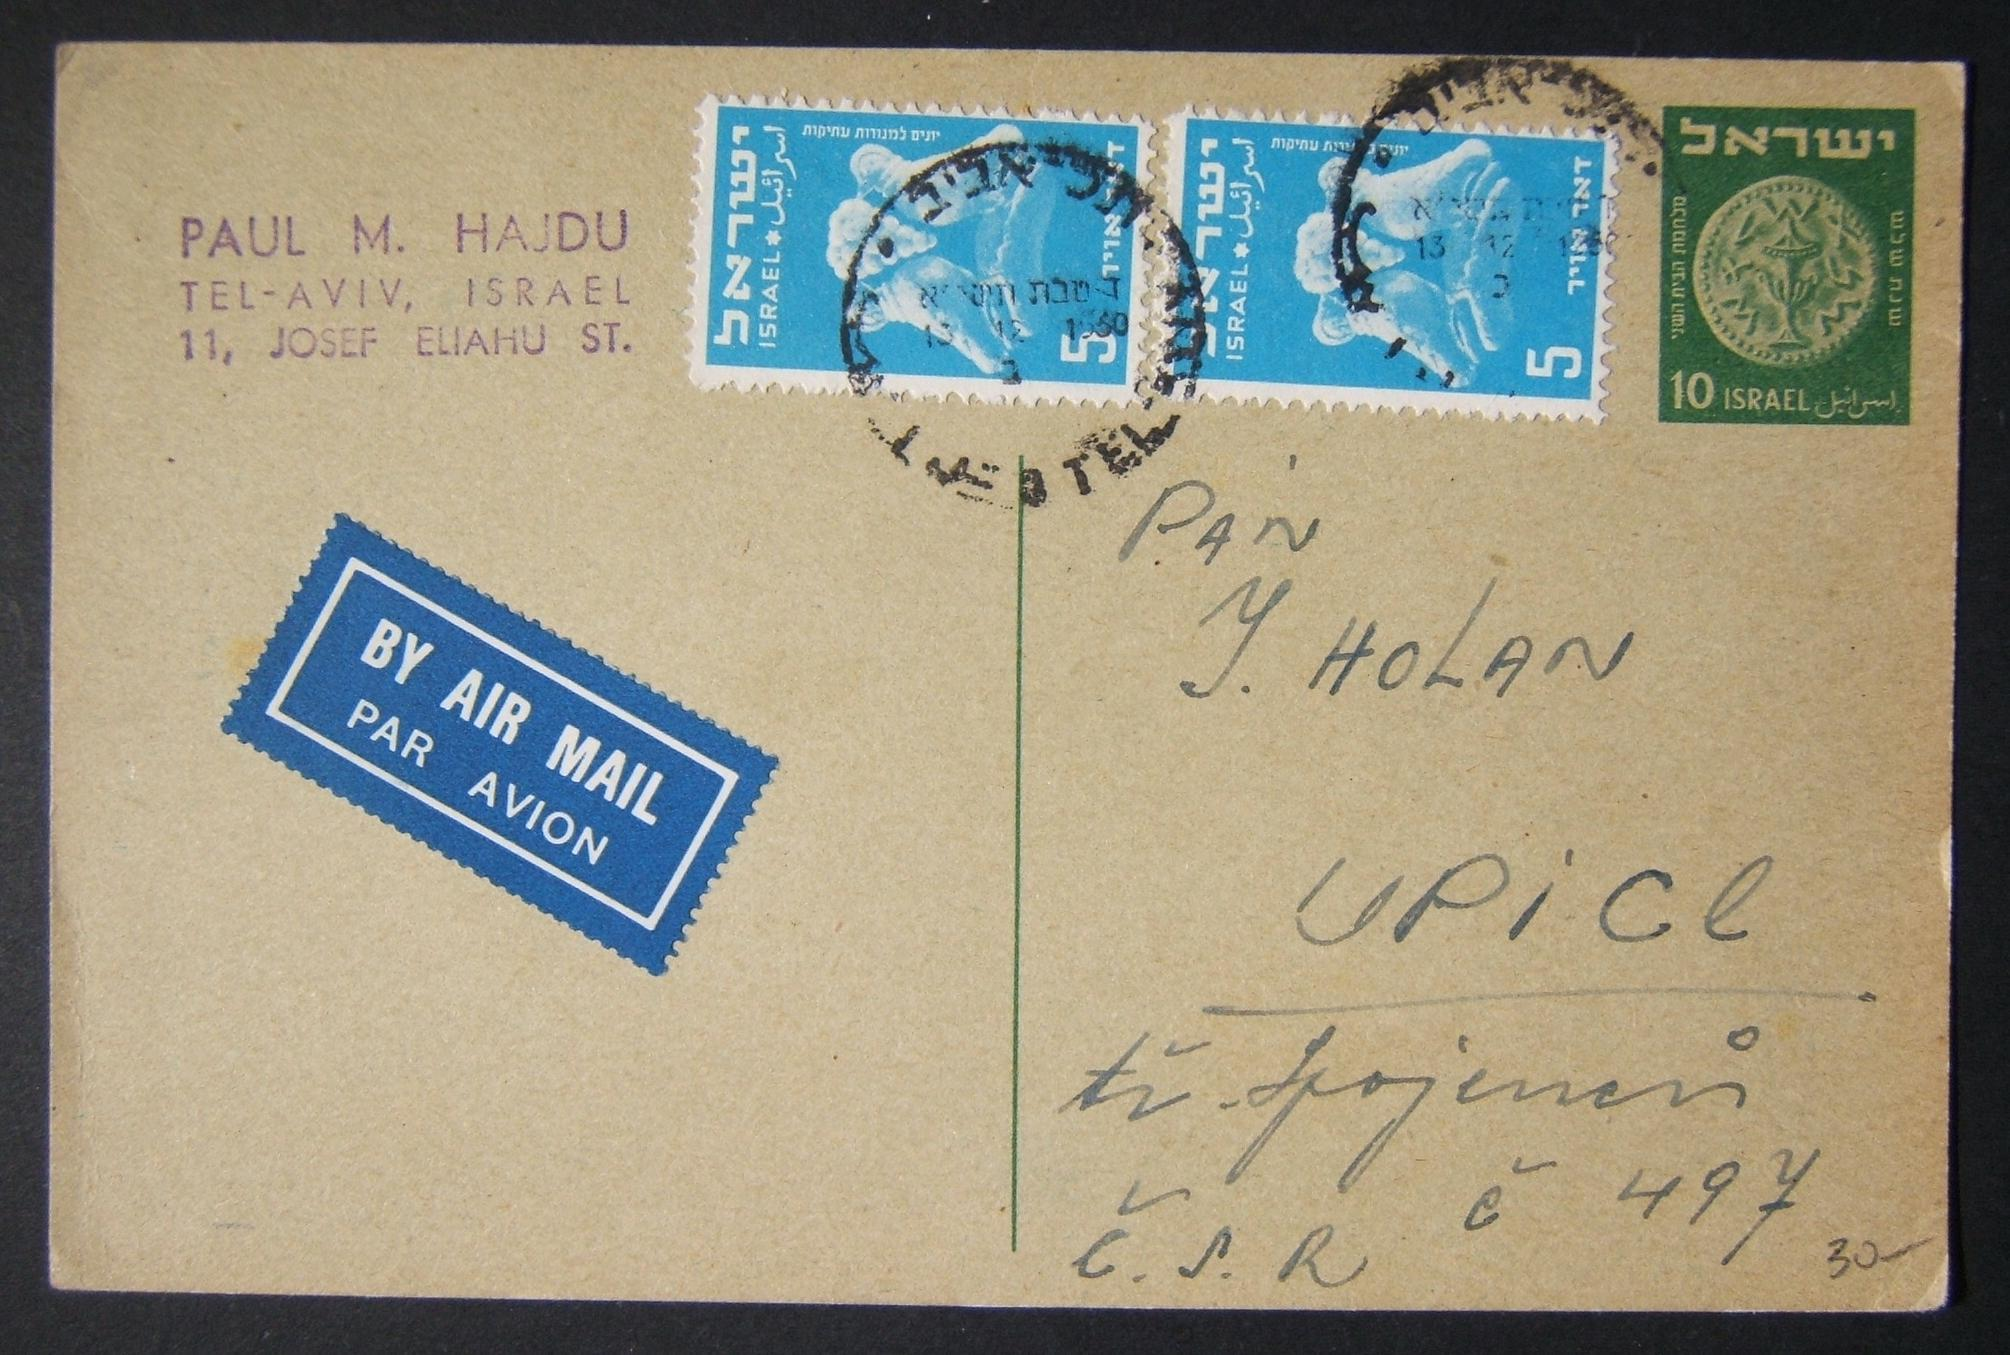 1950 1st airmail / PO's, rates & routes: 13-12-1950 Israeli postal stationary airmailed postcard (Ba-PC.1) ex TLV to CZECHOSLOVAKIA franked 20pr at the FA-2a period pc rate for Eur